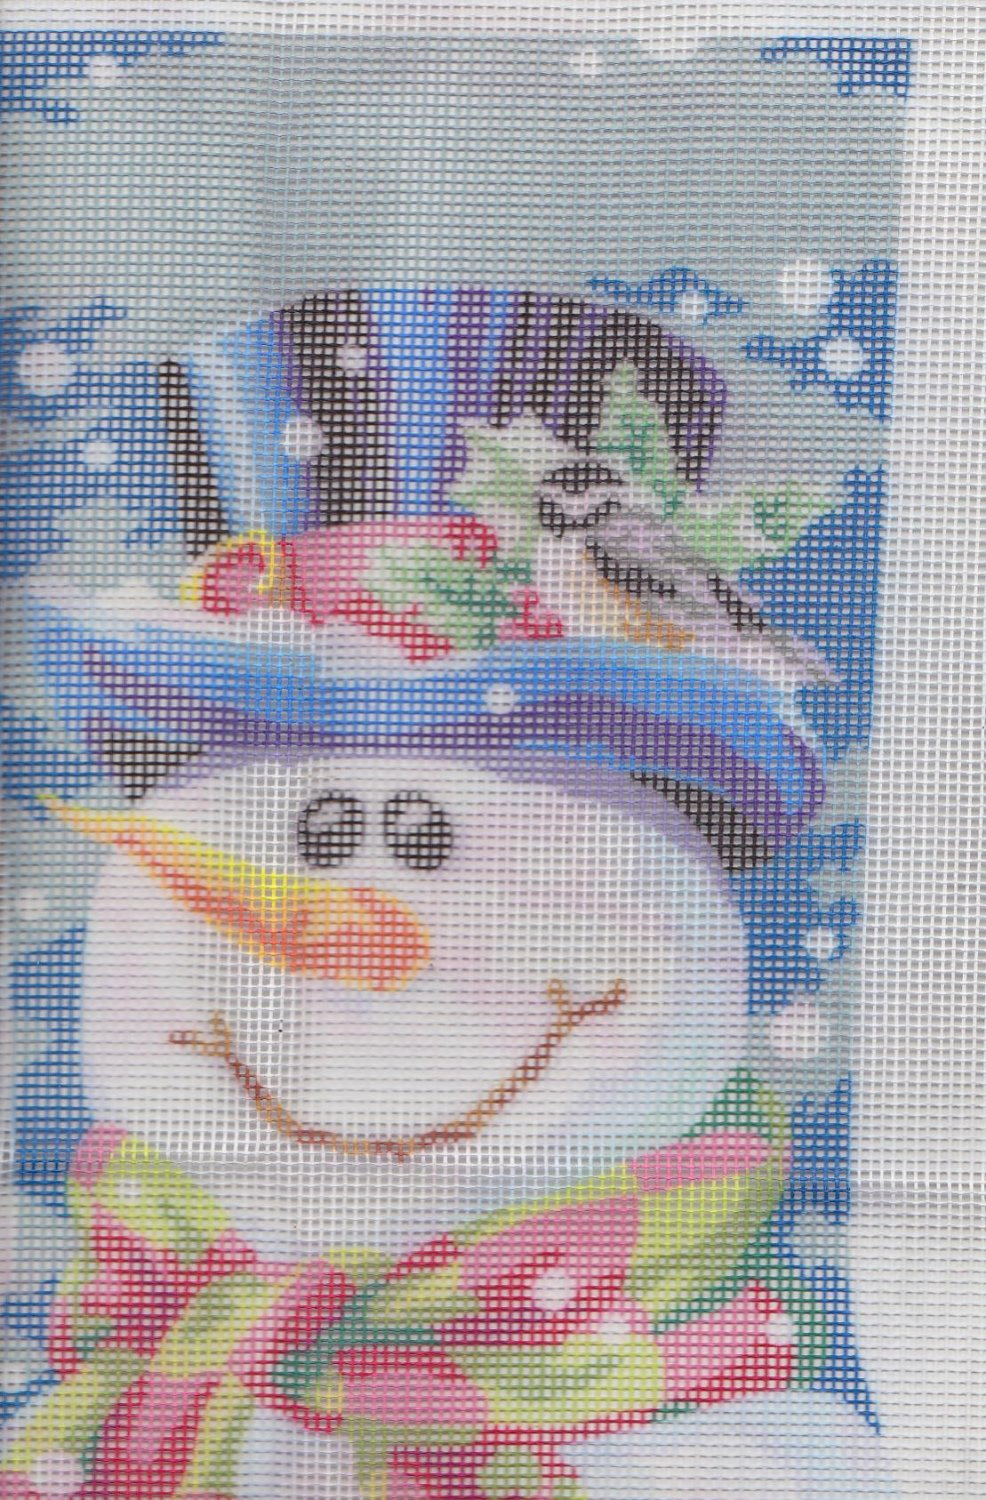 Remarkable Snowman Needlepoint Christmas Stocking Dimensions 9128 14 1 2Quot Easy Diy Christmas Decorations Tissureus